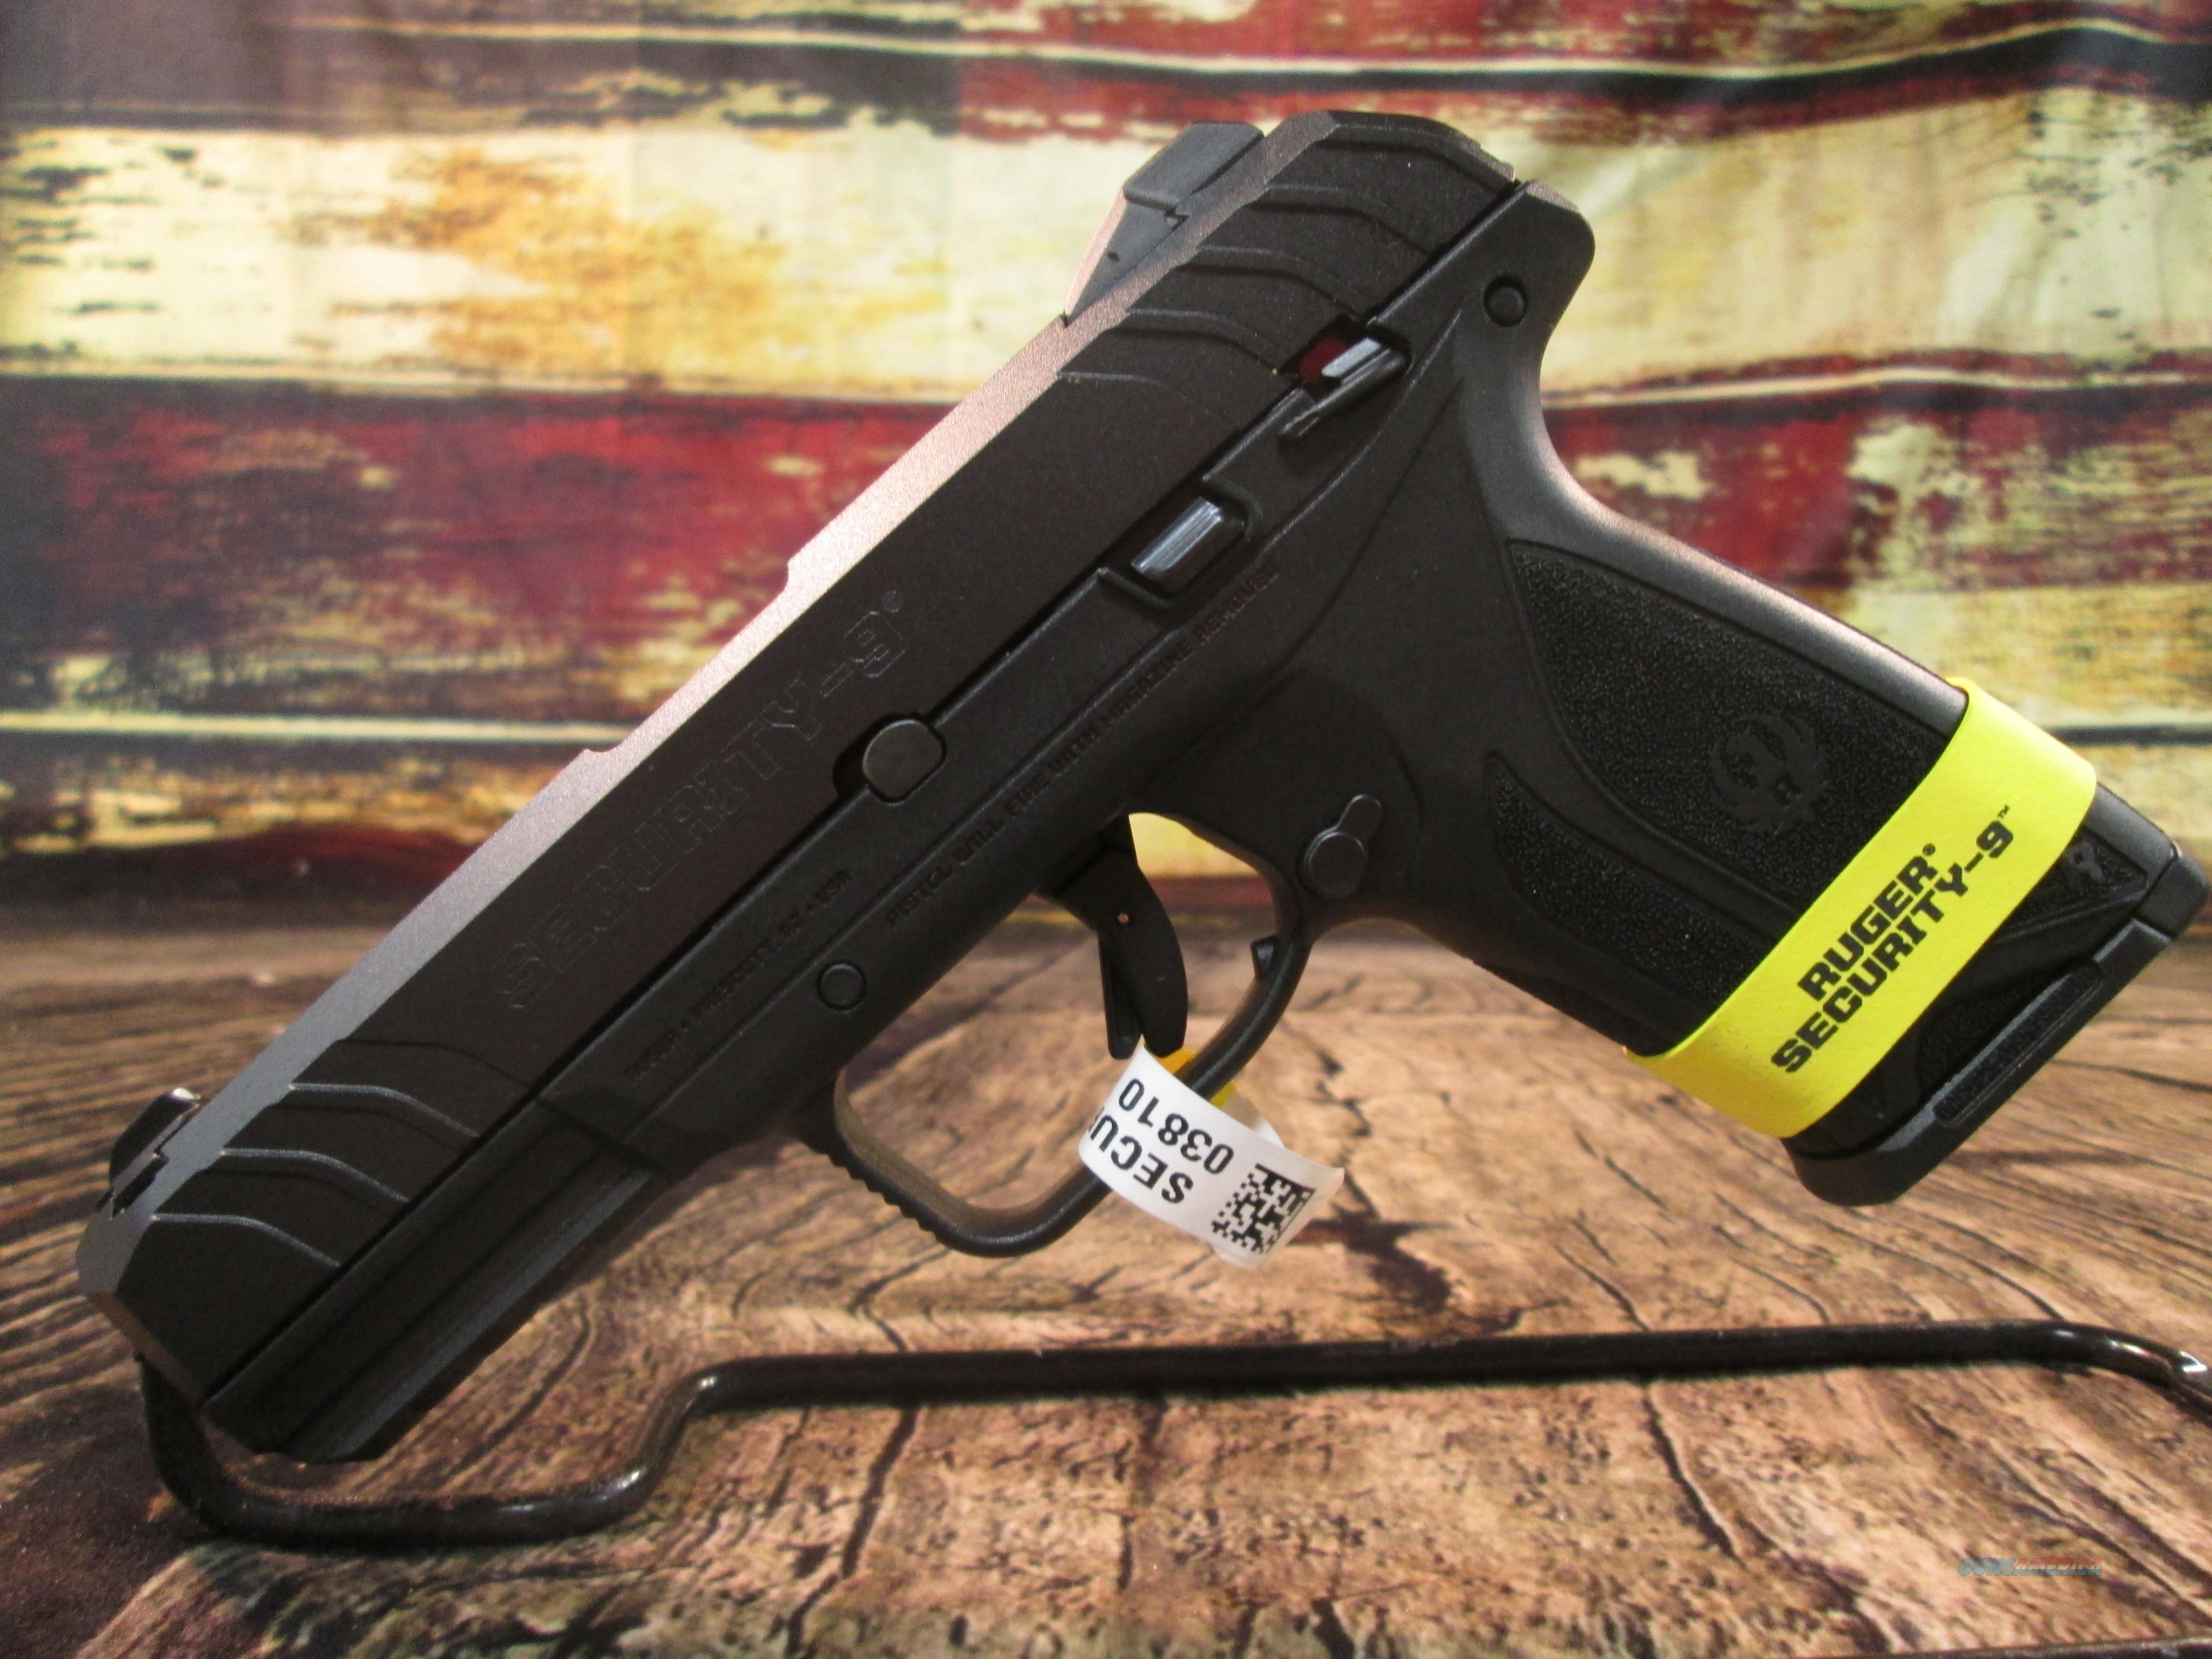 RUGER SECURITY-9 9MM NEW (3810)  Guns > Pistols > Ruger Semi-Auto Pistols > Security 9